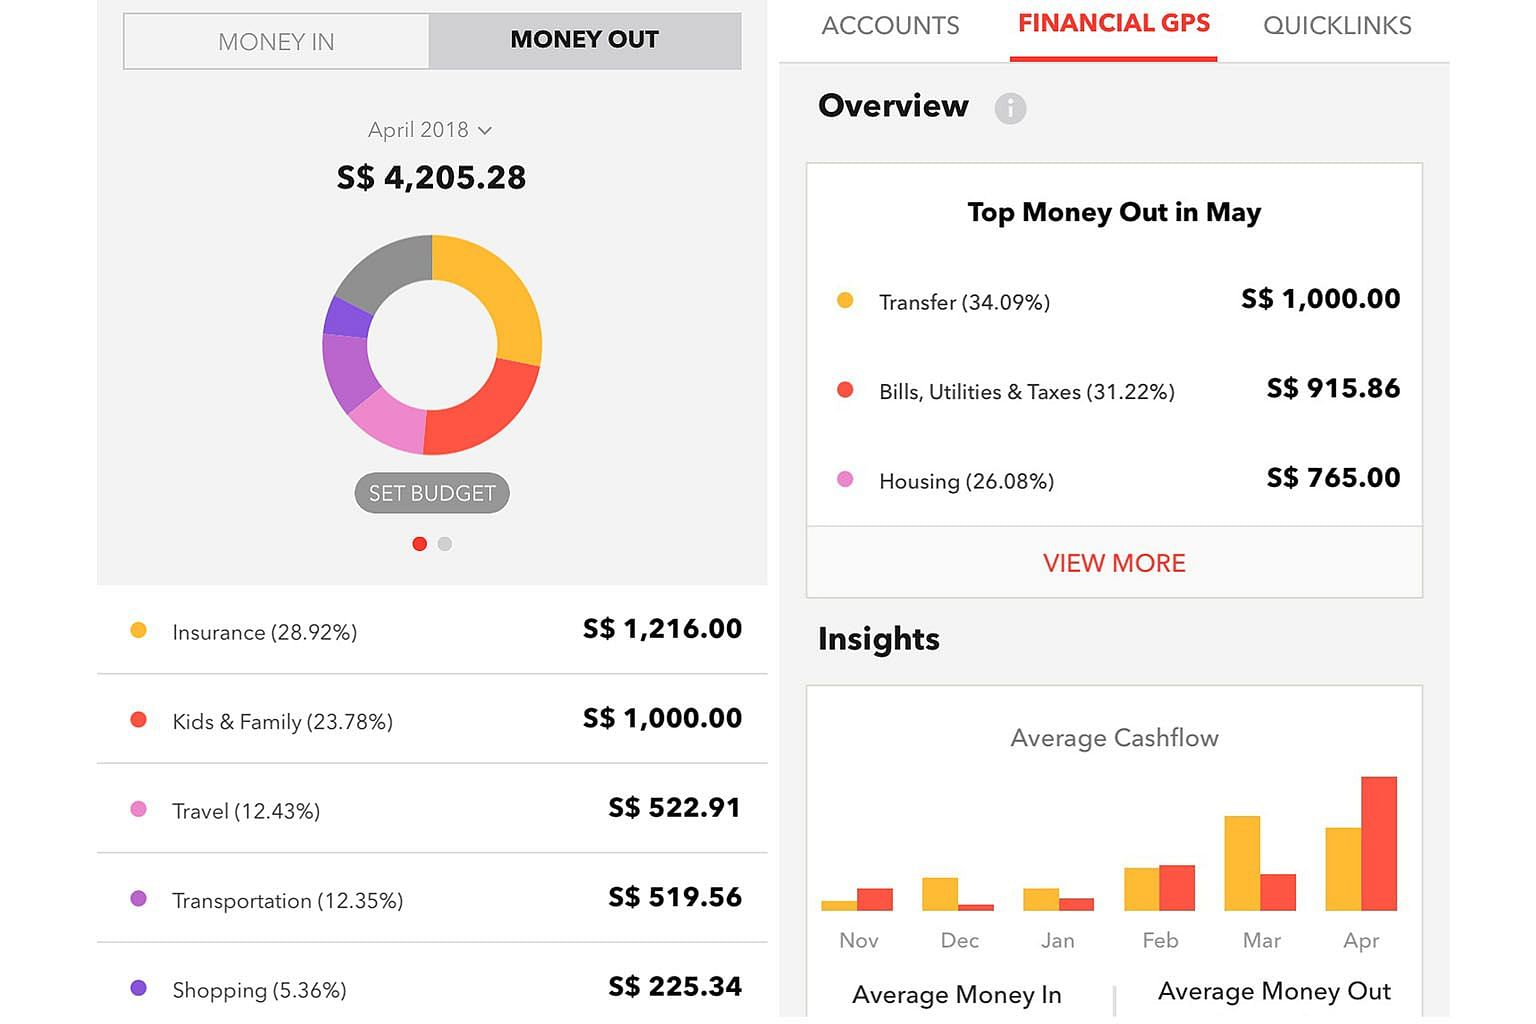 """DBS' first digital financial adviser, Your Financial GPS, provides clarity on one's cash flow management. Its """"Money In, Money Out"""" function reveals gaps between one's """"mental accounting"""" and actual monthly spending."""